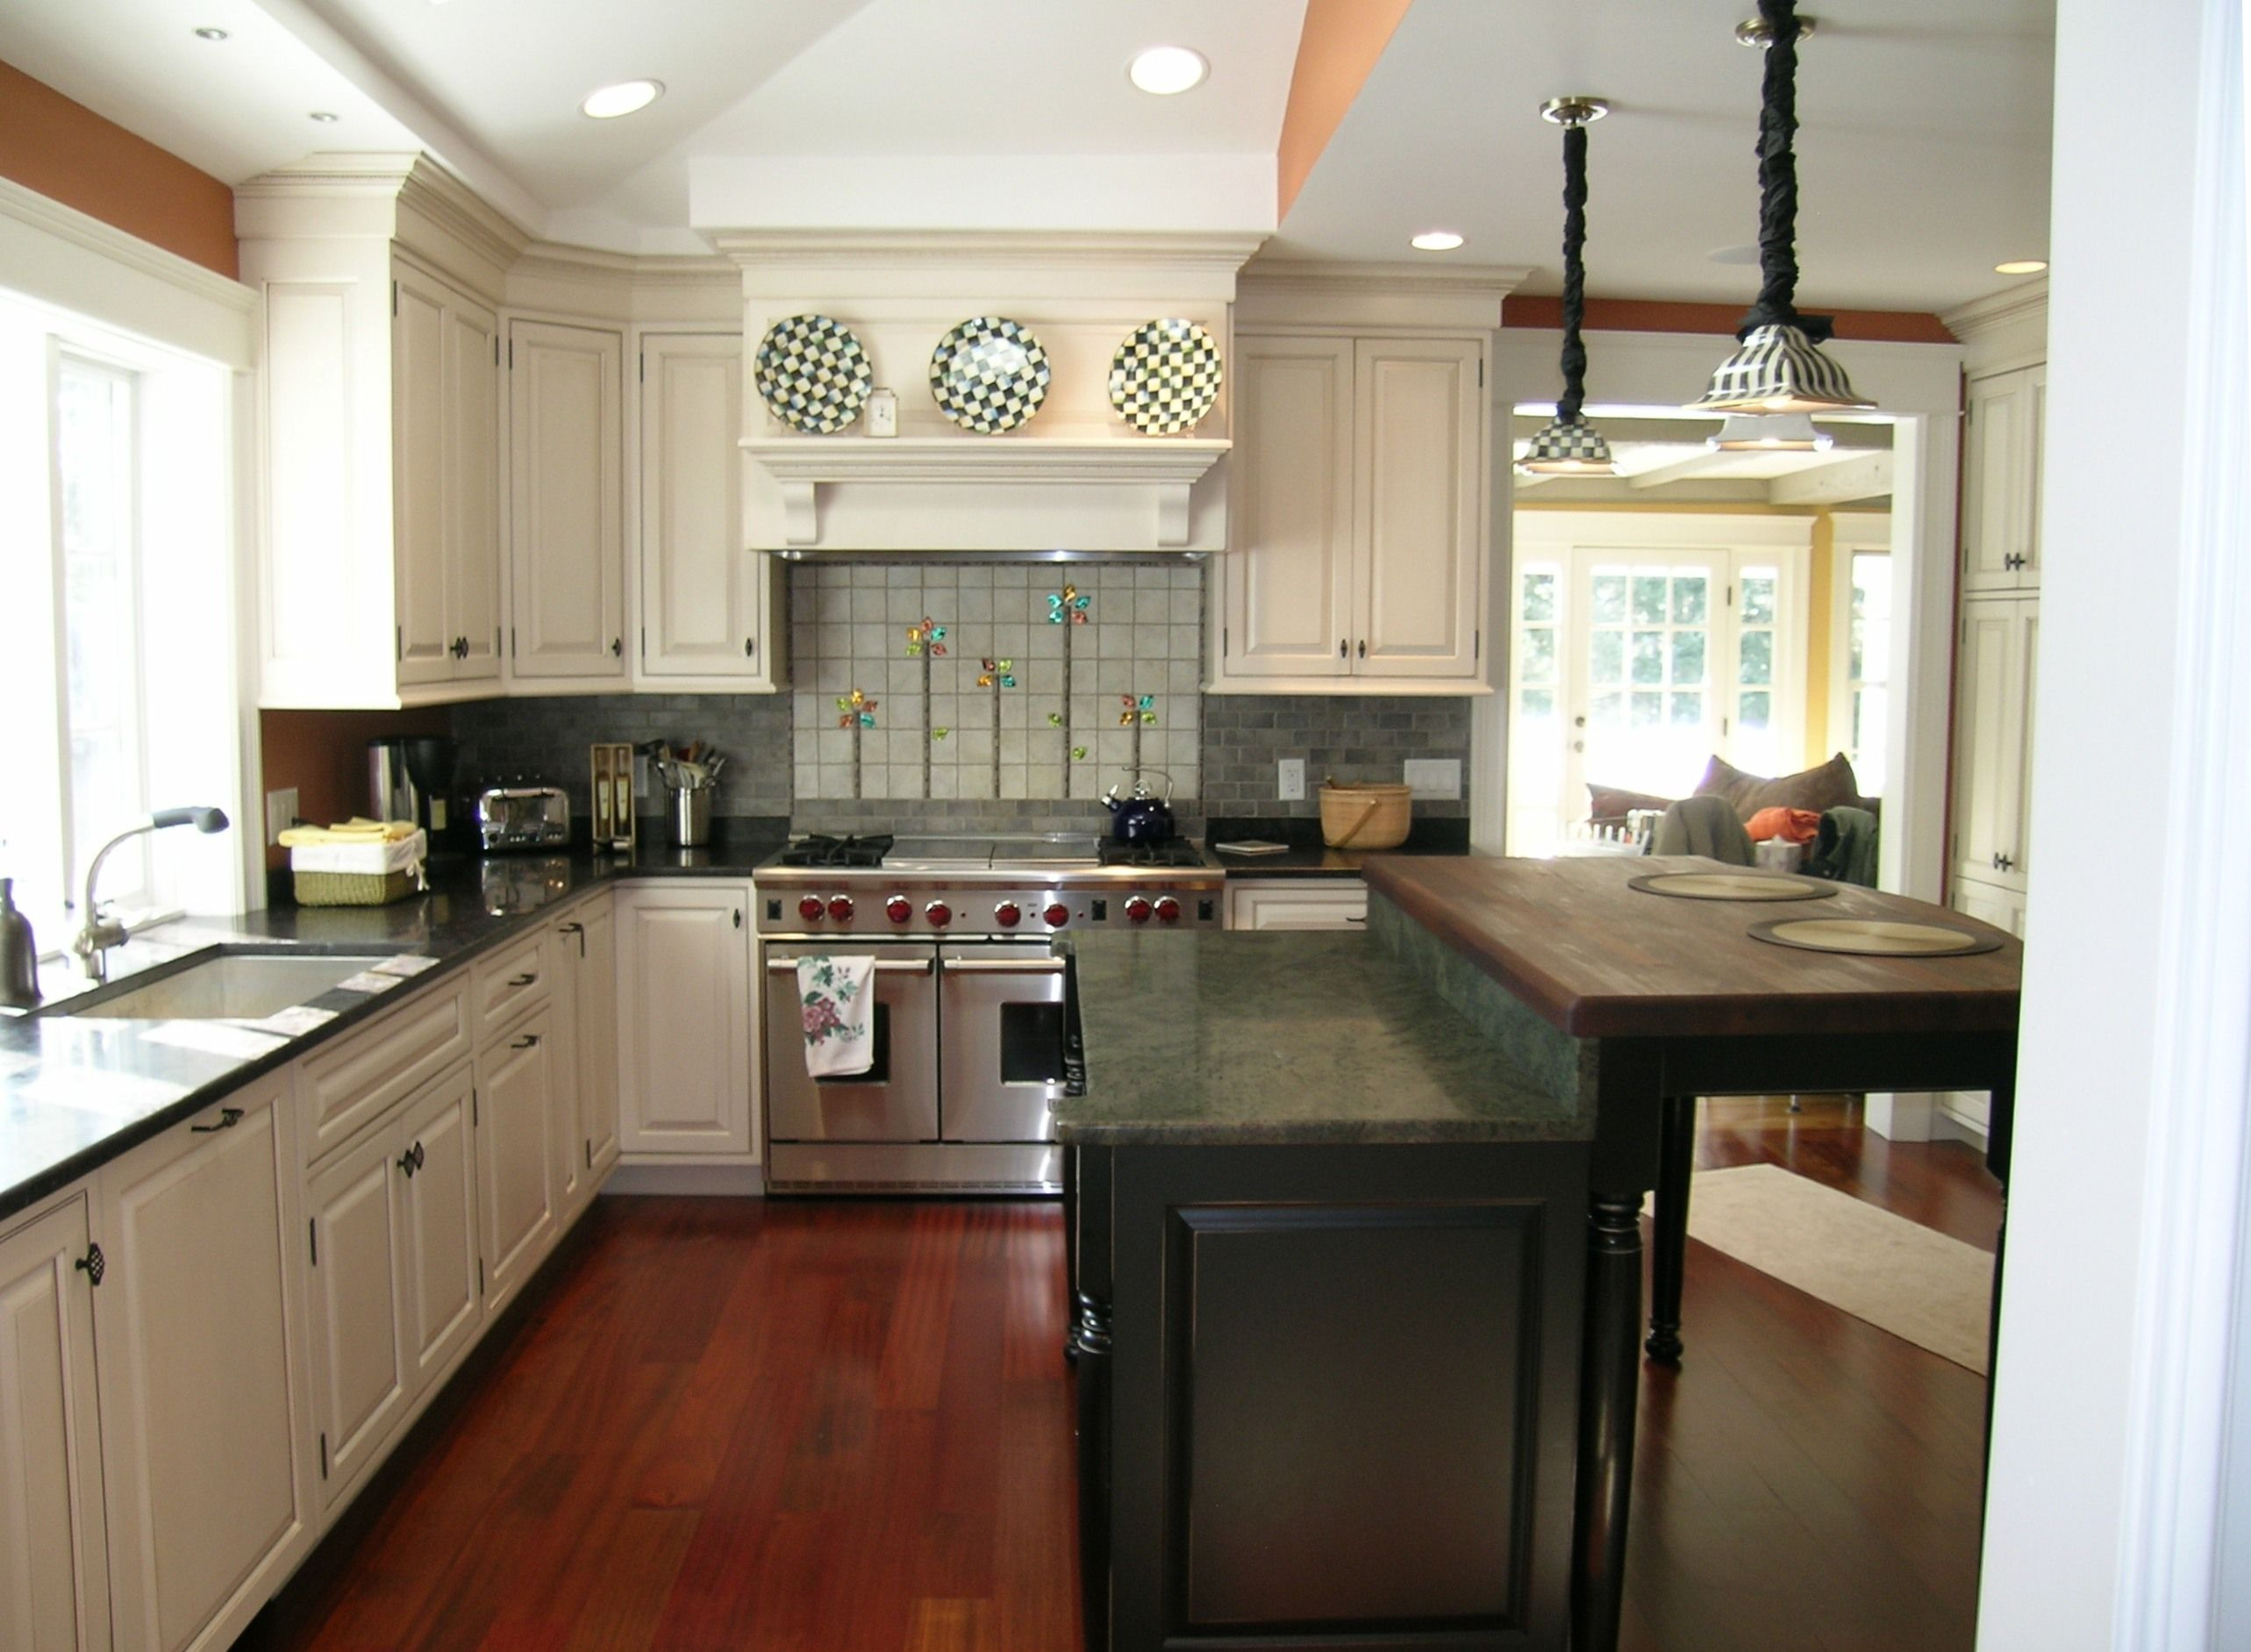 Painting White Cabinets Dark Brown Image Result For Tall Lamp For Kitchen Counter Corner Kitchens